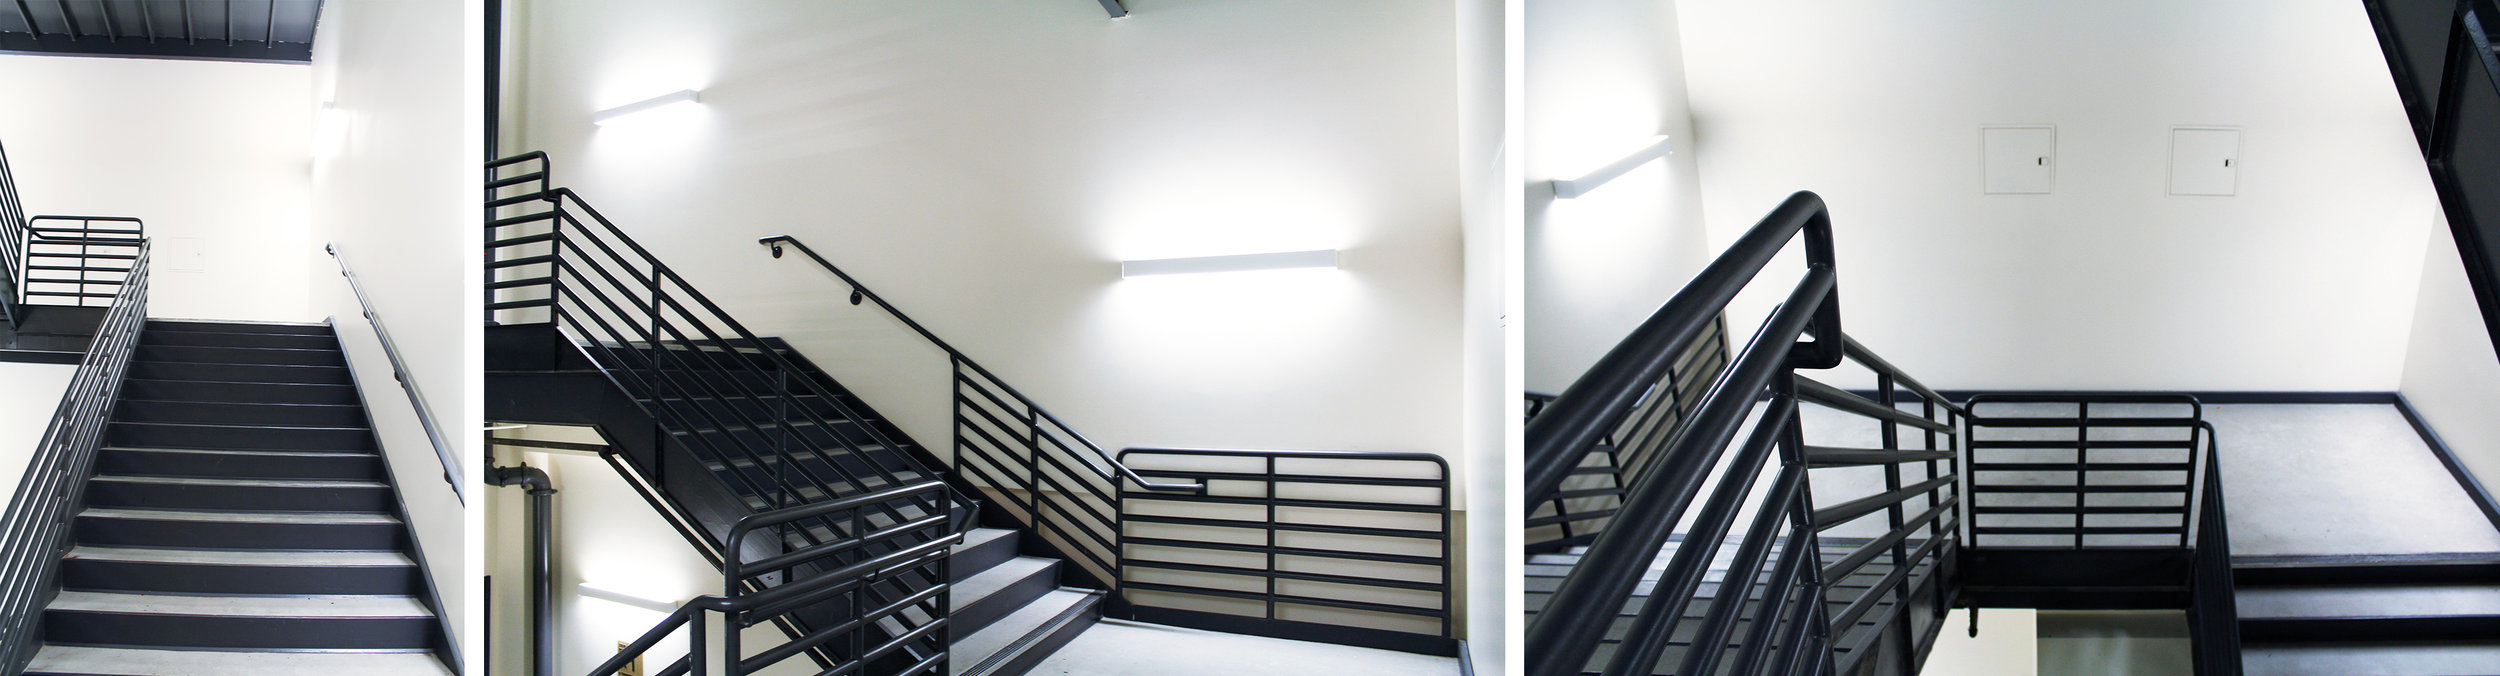 Photos of the Ronal Tutor Campus Center stairs